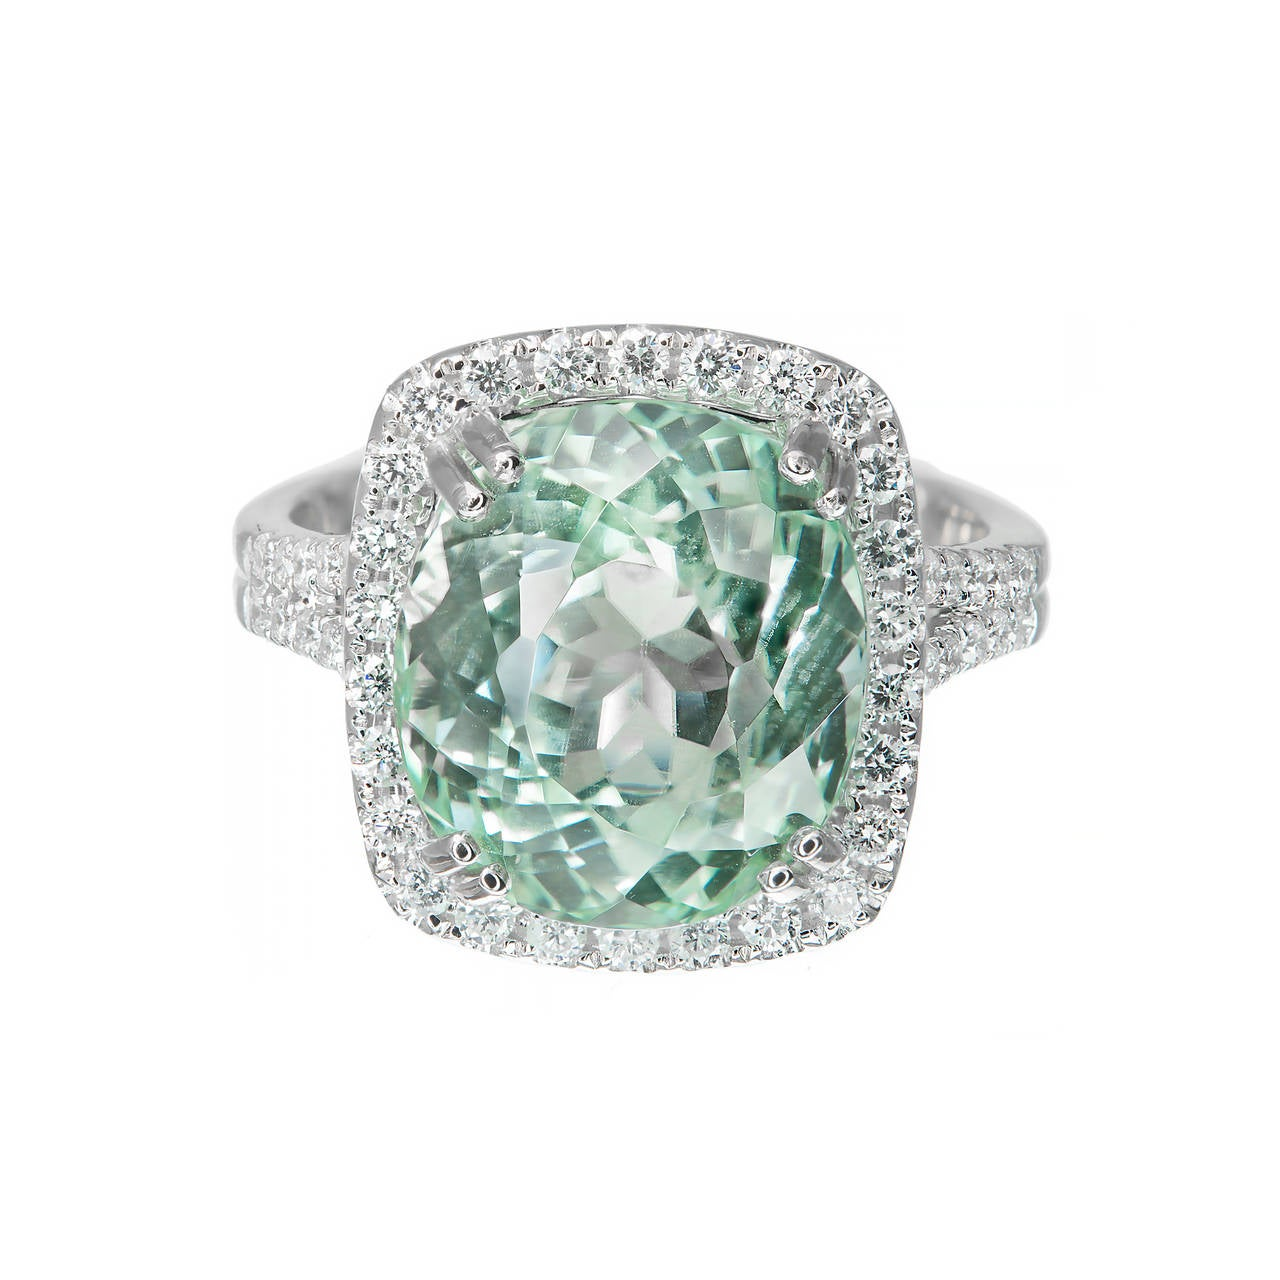 kiki rings product green diamond and mcdonough ring tourmaline engagement mint jewellery